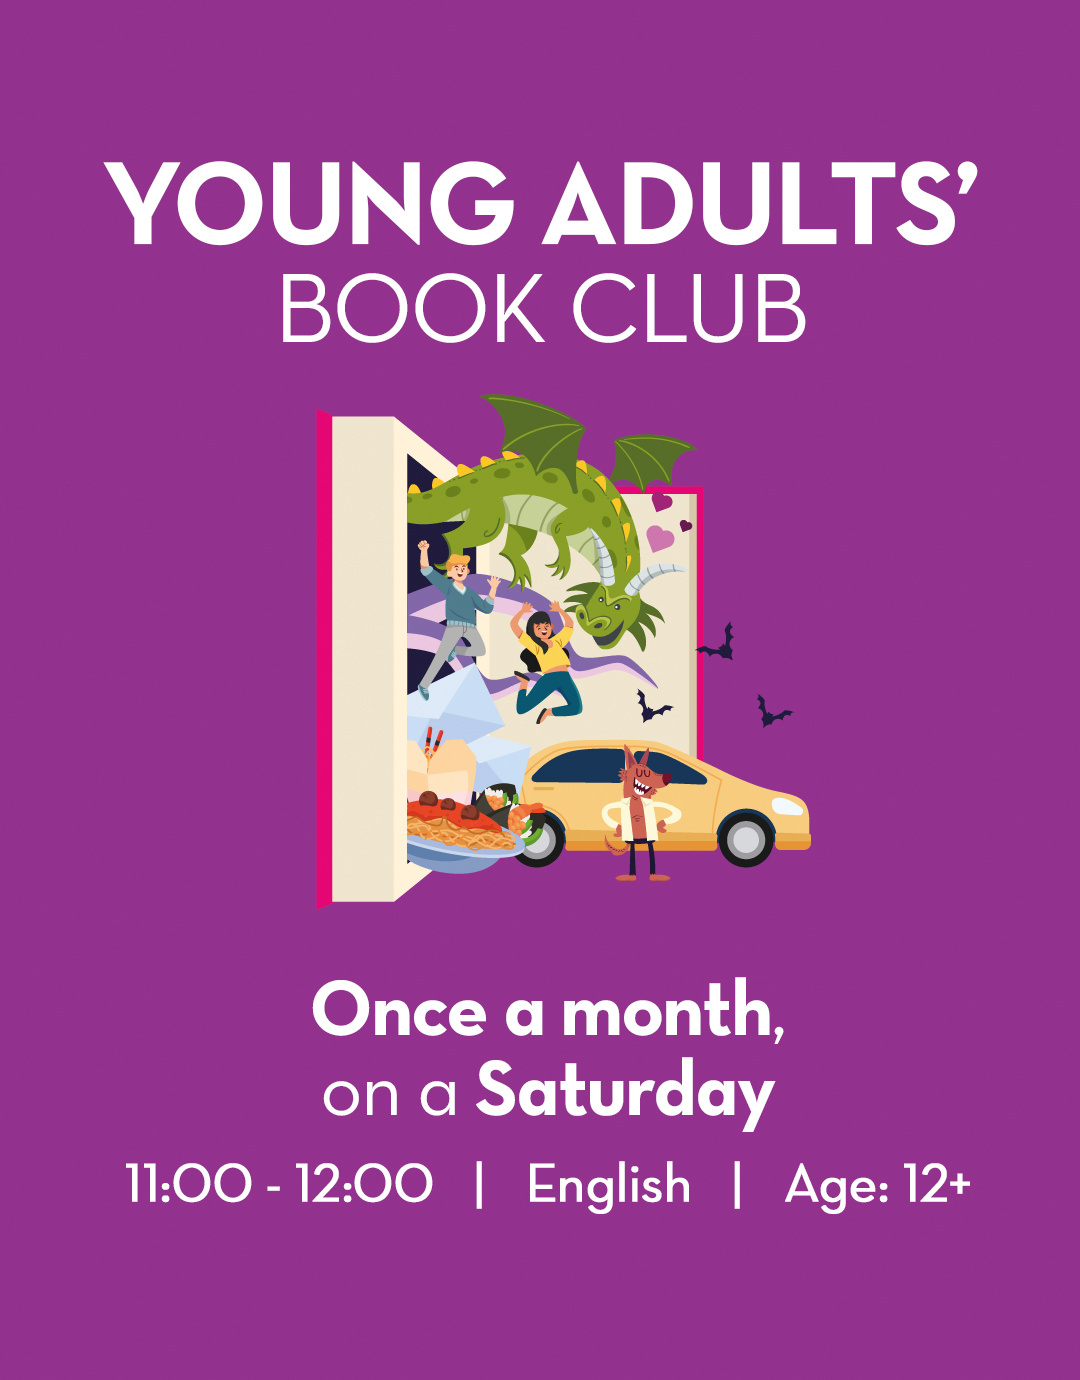 Emirates Literature Foundation Young Adult Book Club Details